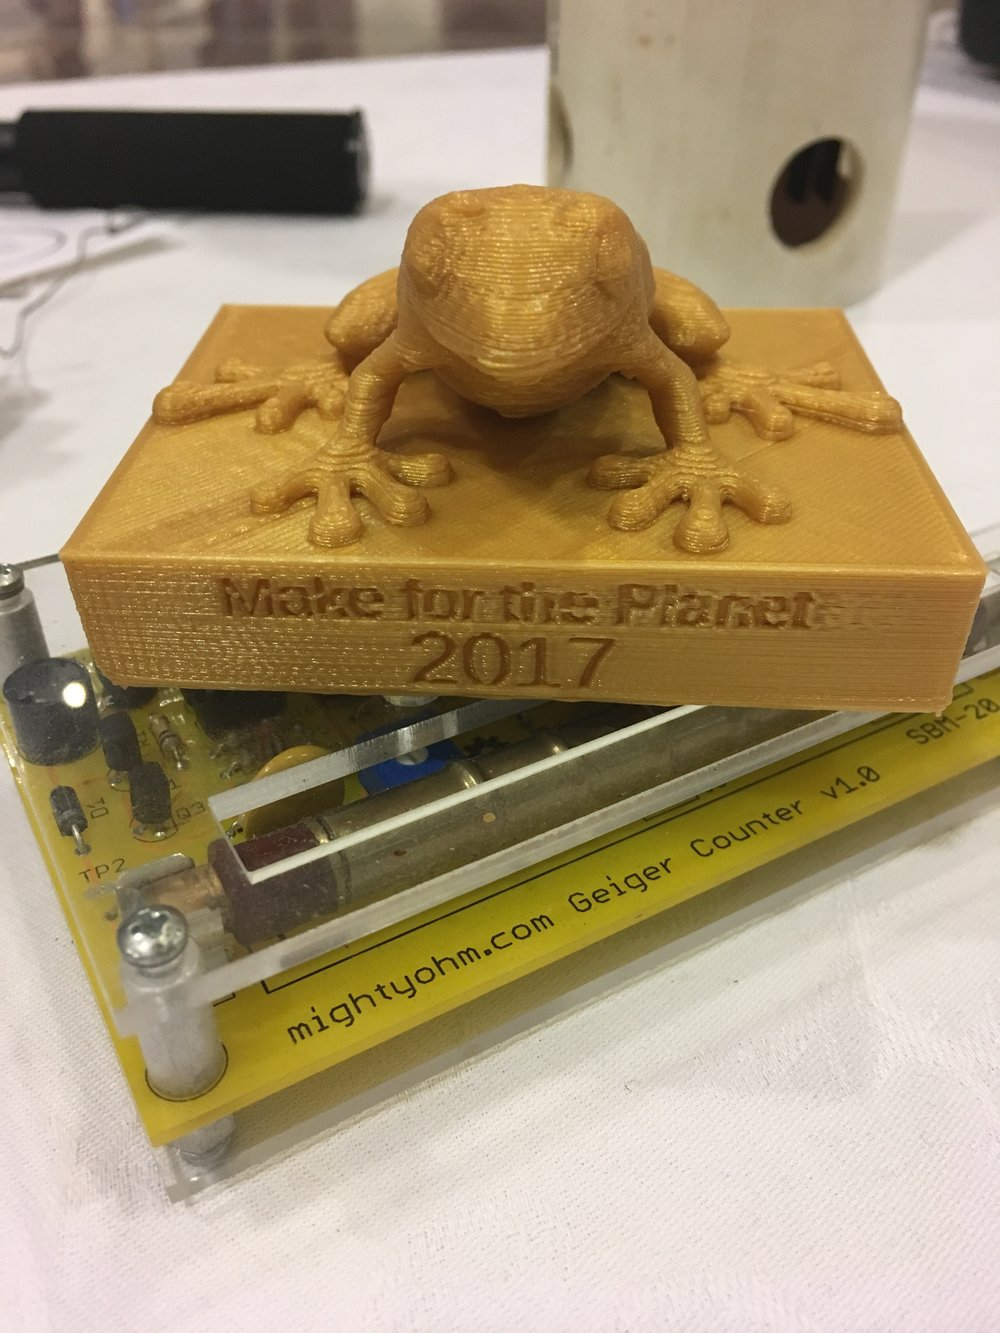 The Golden Frog 3D printed trophy